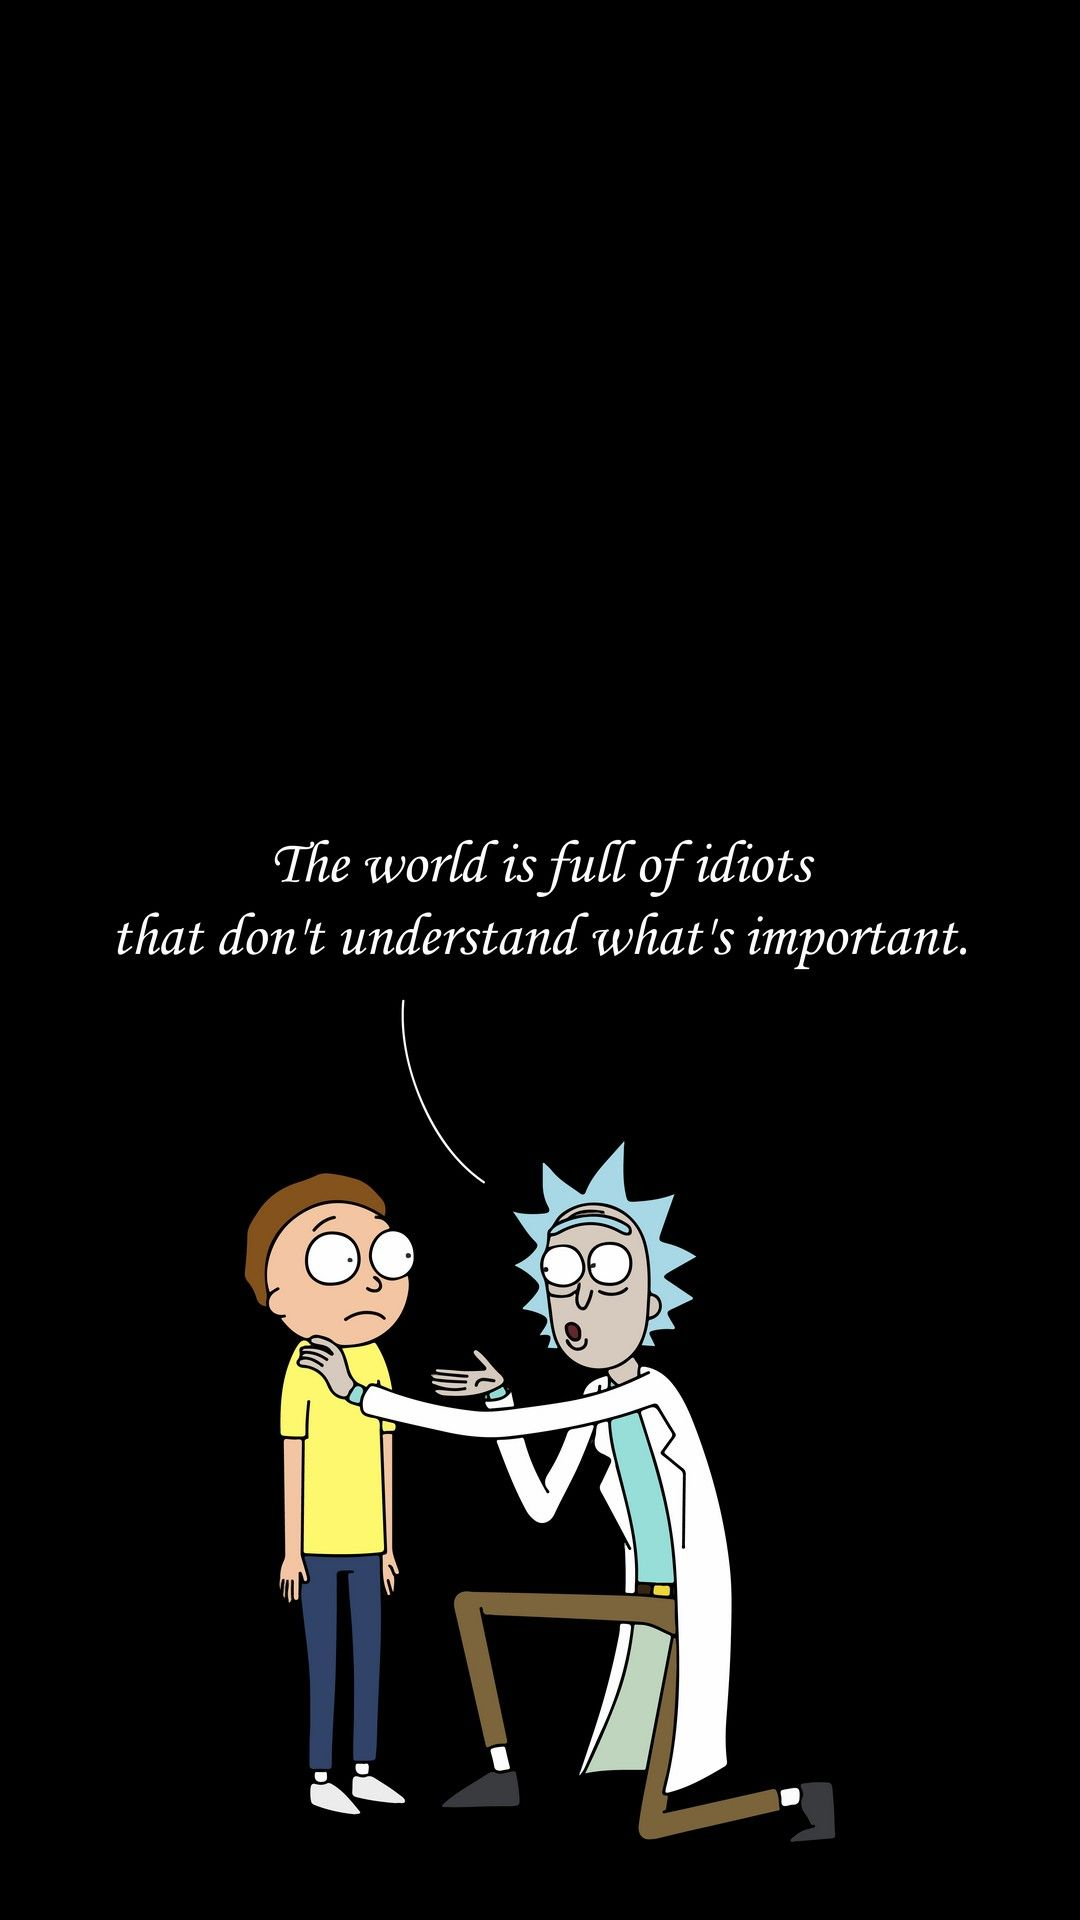 Quotes Wallpaper Rick And Morty iPhone Rick morty poster Rick 1080x1920